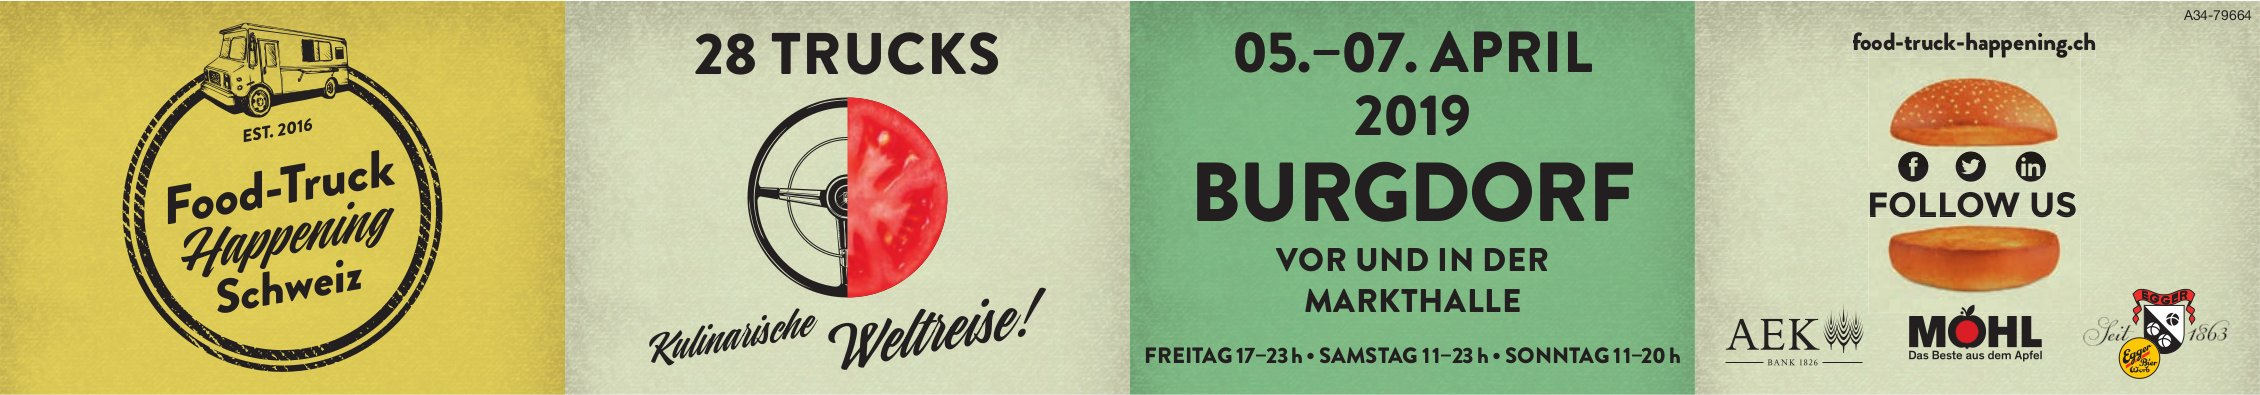 Food-Truck Happening Schweiz, 5. bis 7. April in Burgdorf